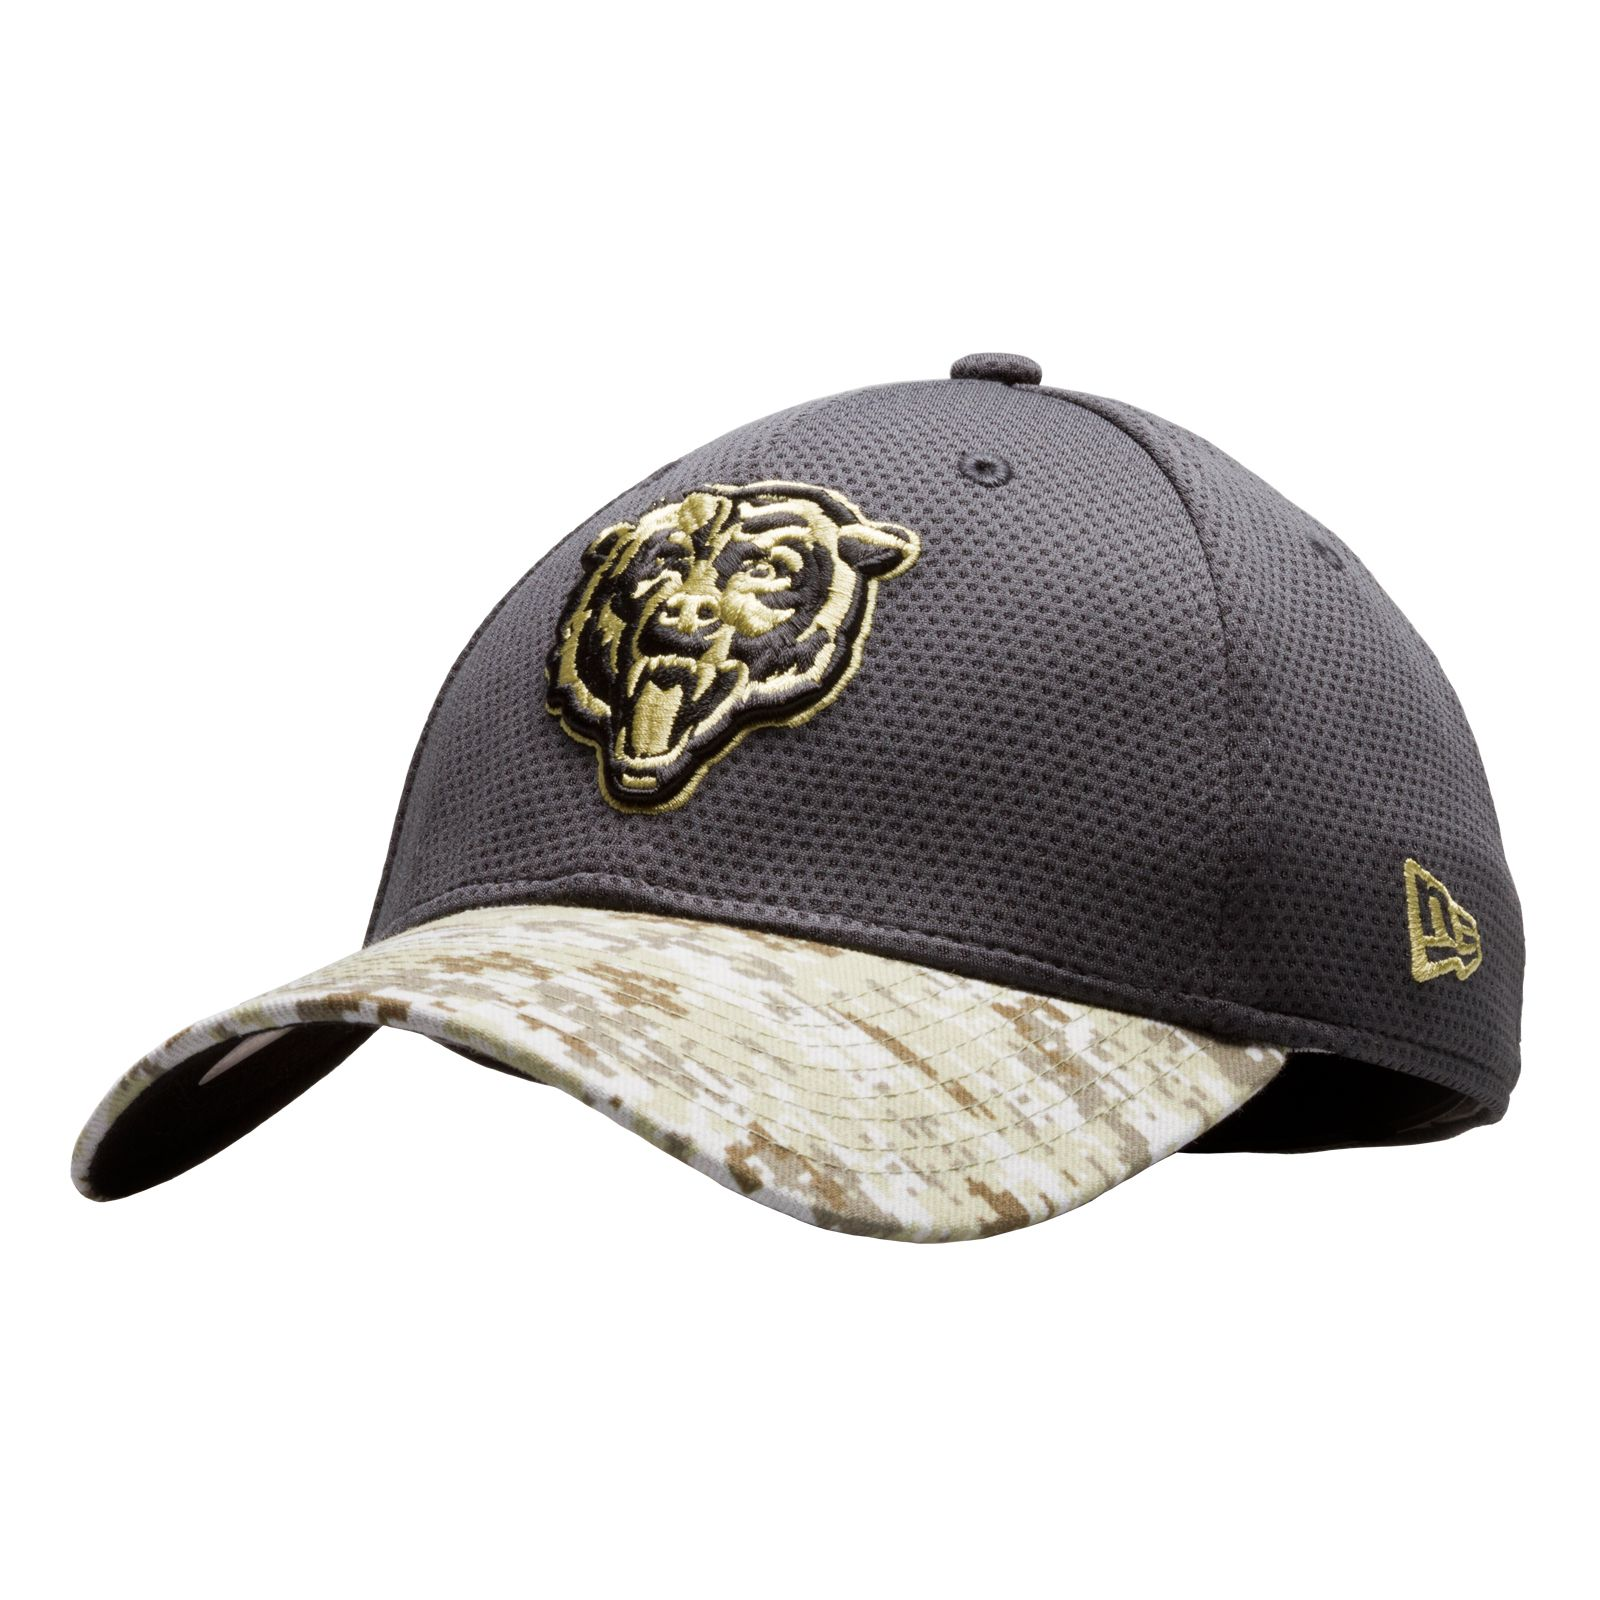 7481e1b3 real chicago bears salute to service hat 8e942 14dce